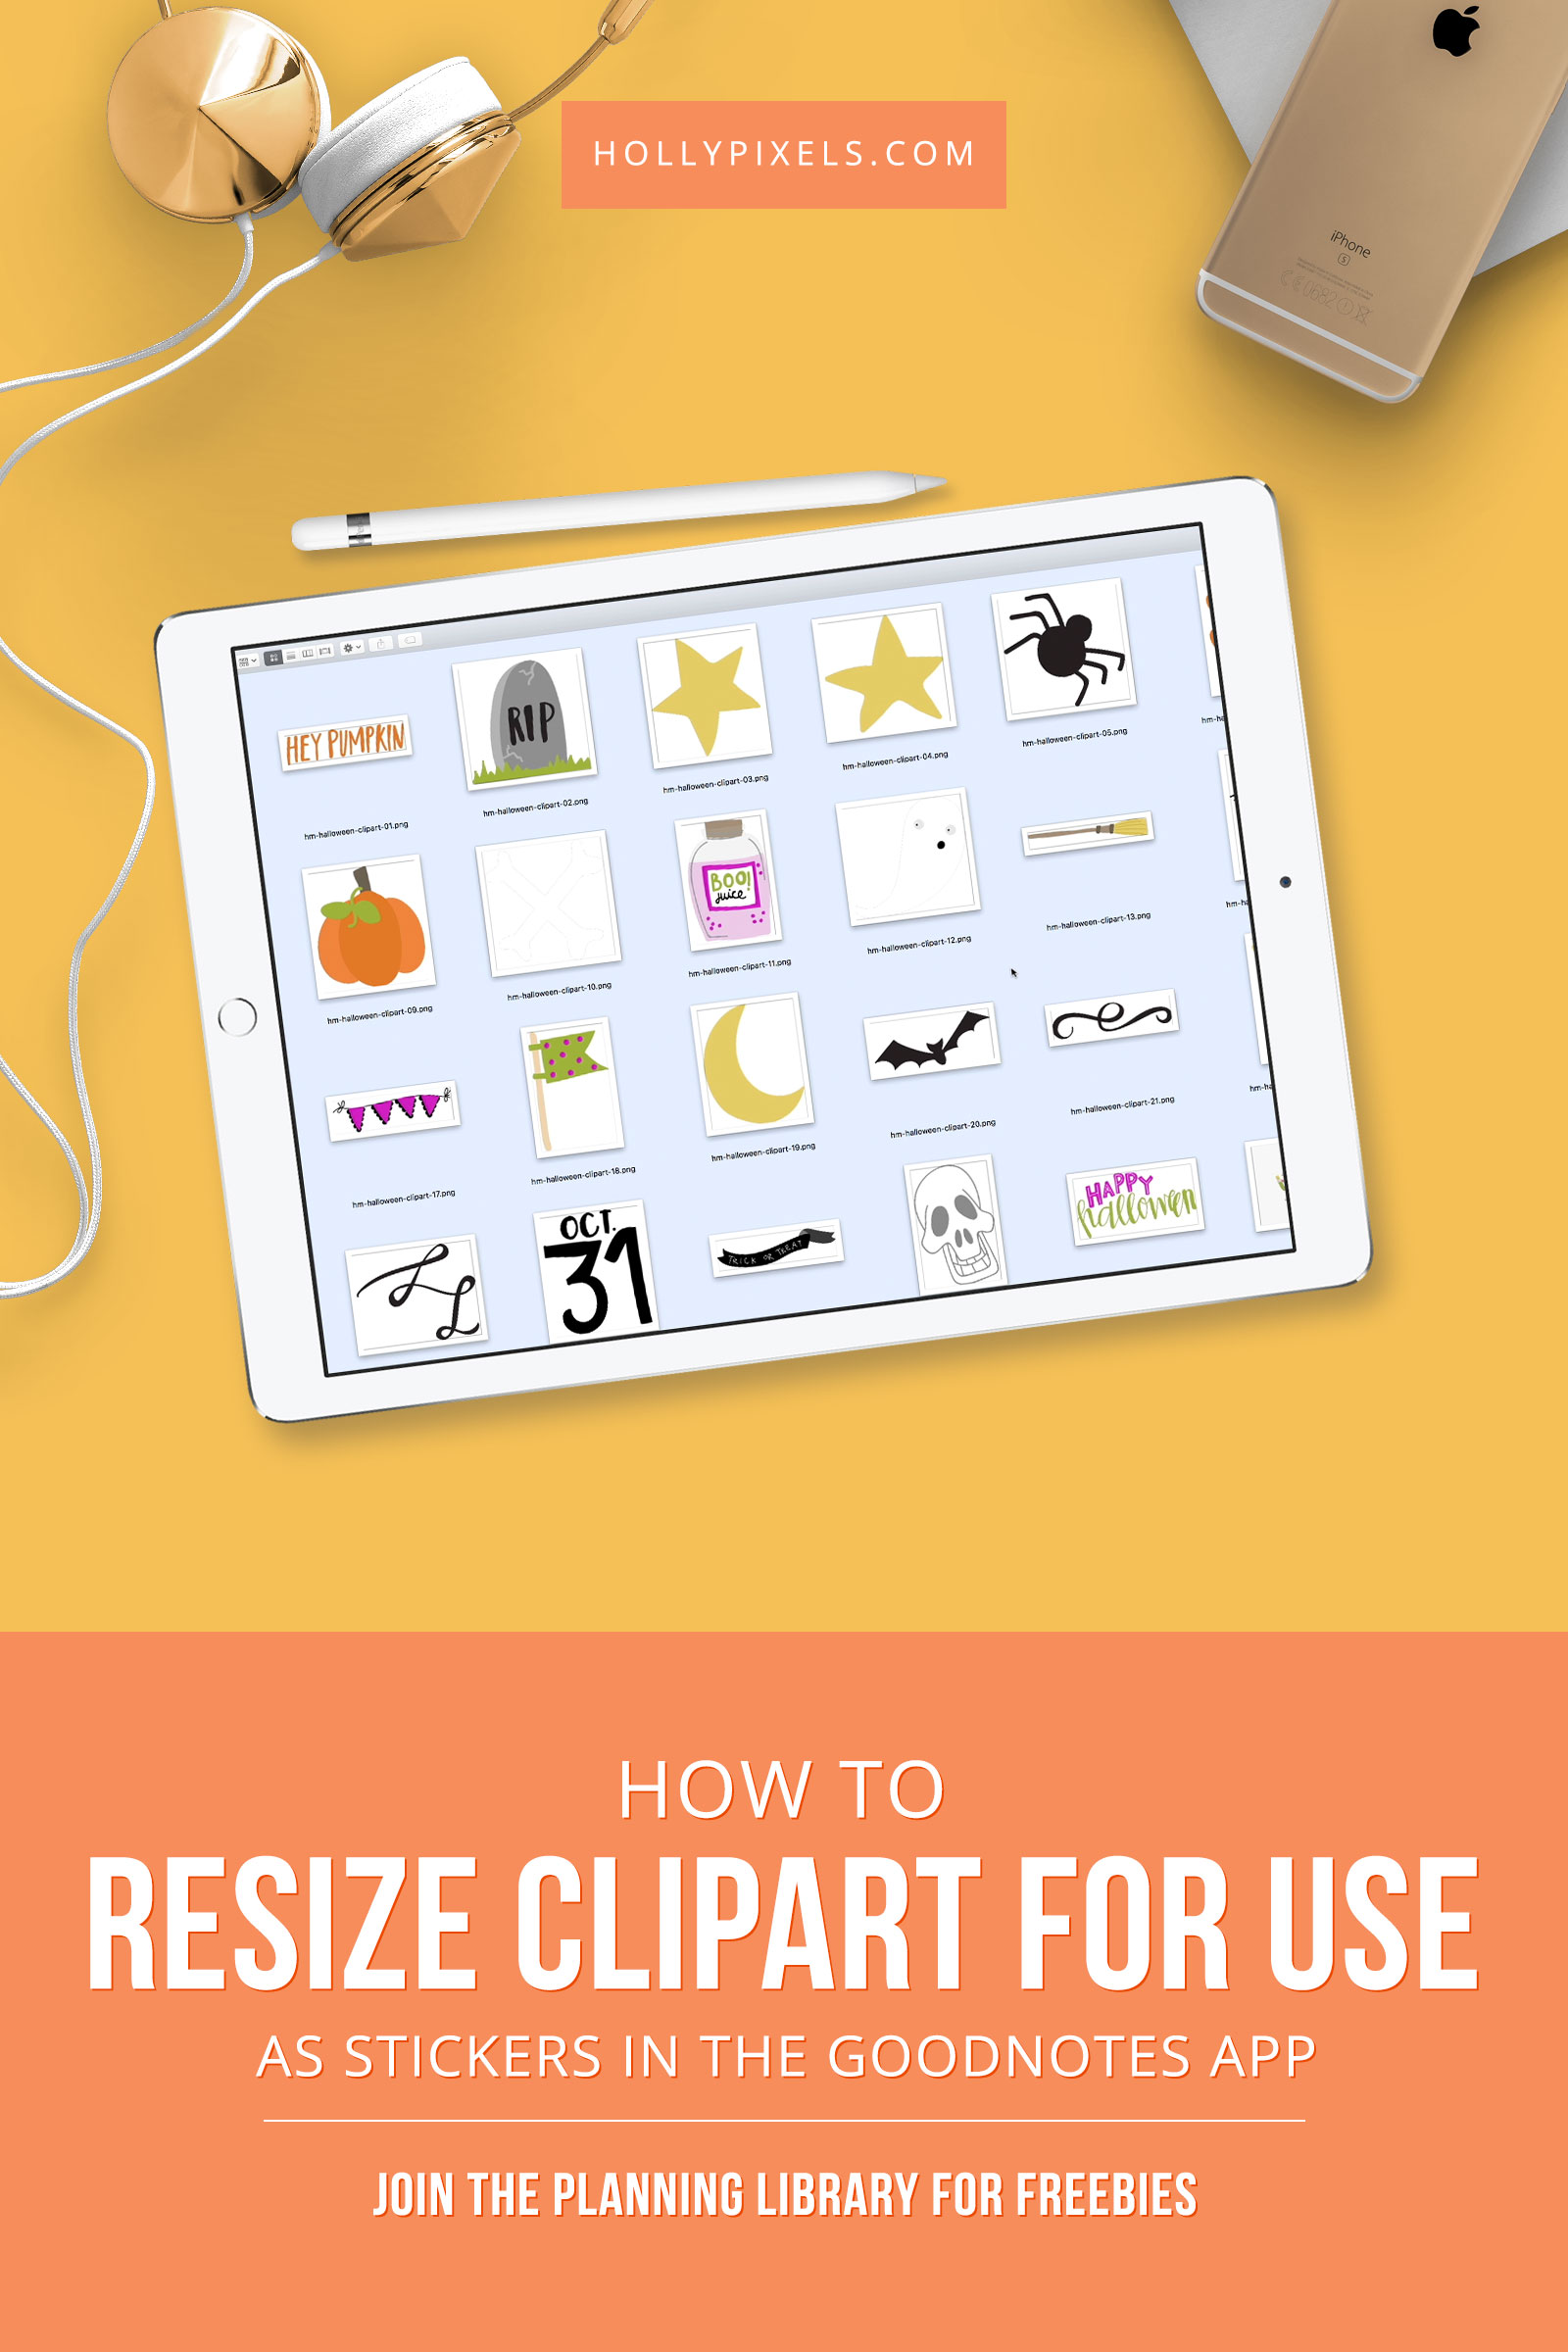 If you're in love with clipart and want to use it as GoodNotes stickers you can! We just have to resize them so they don't blow up the file space on our iPads. Watch as I show you a free way and using Photoshop.